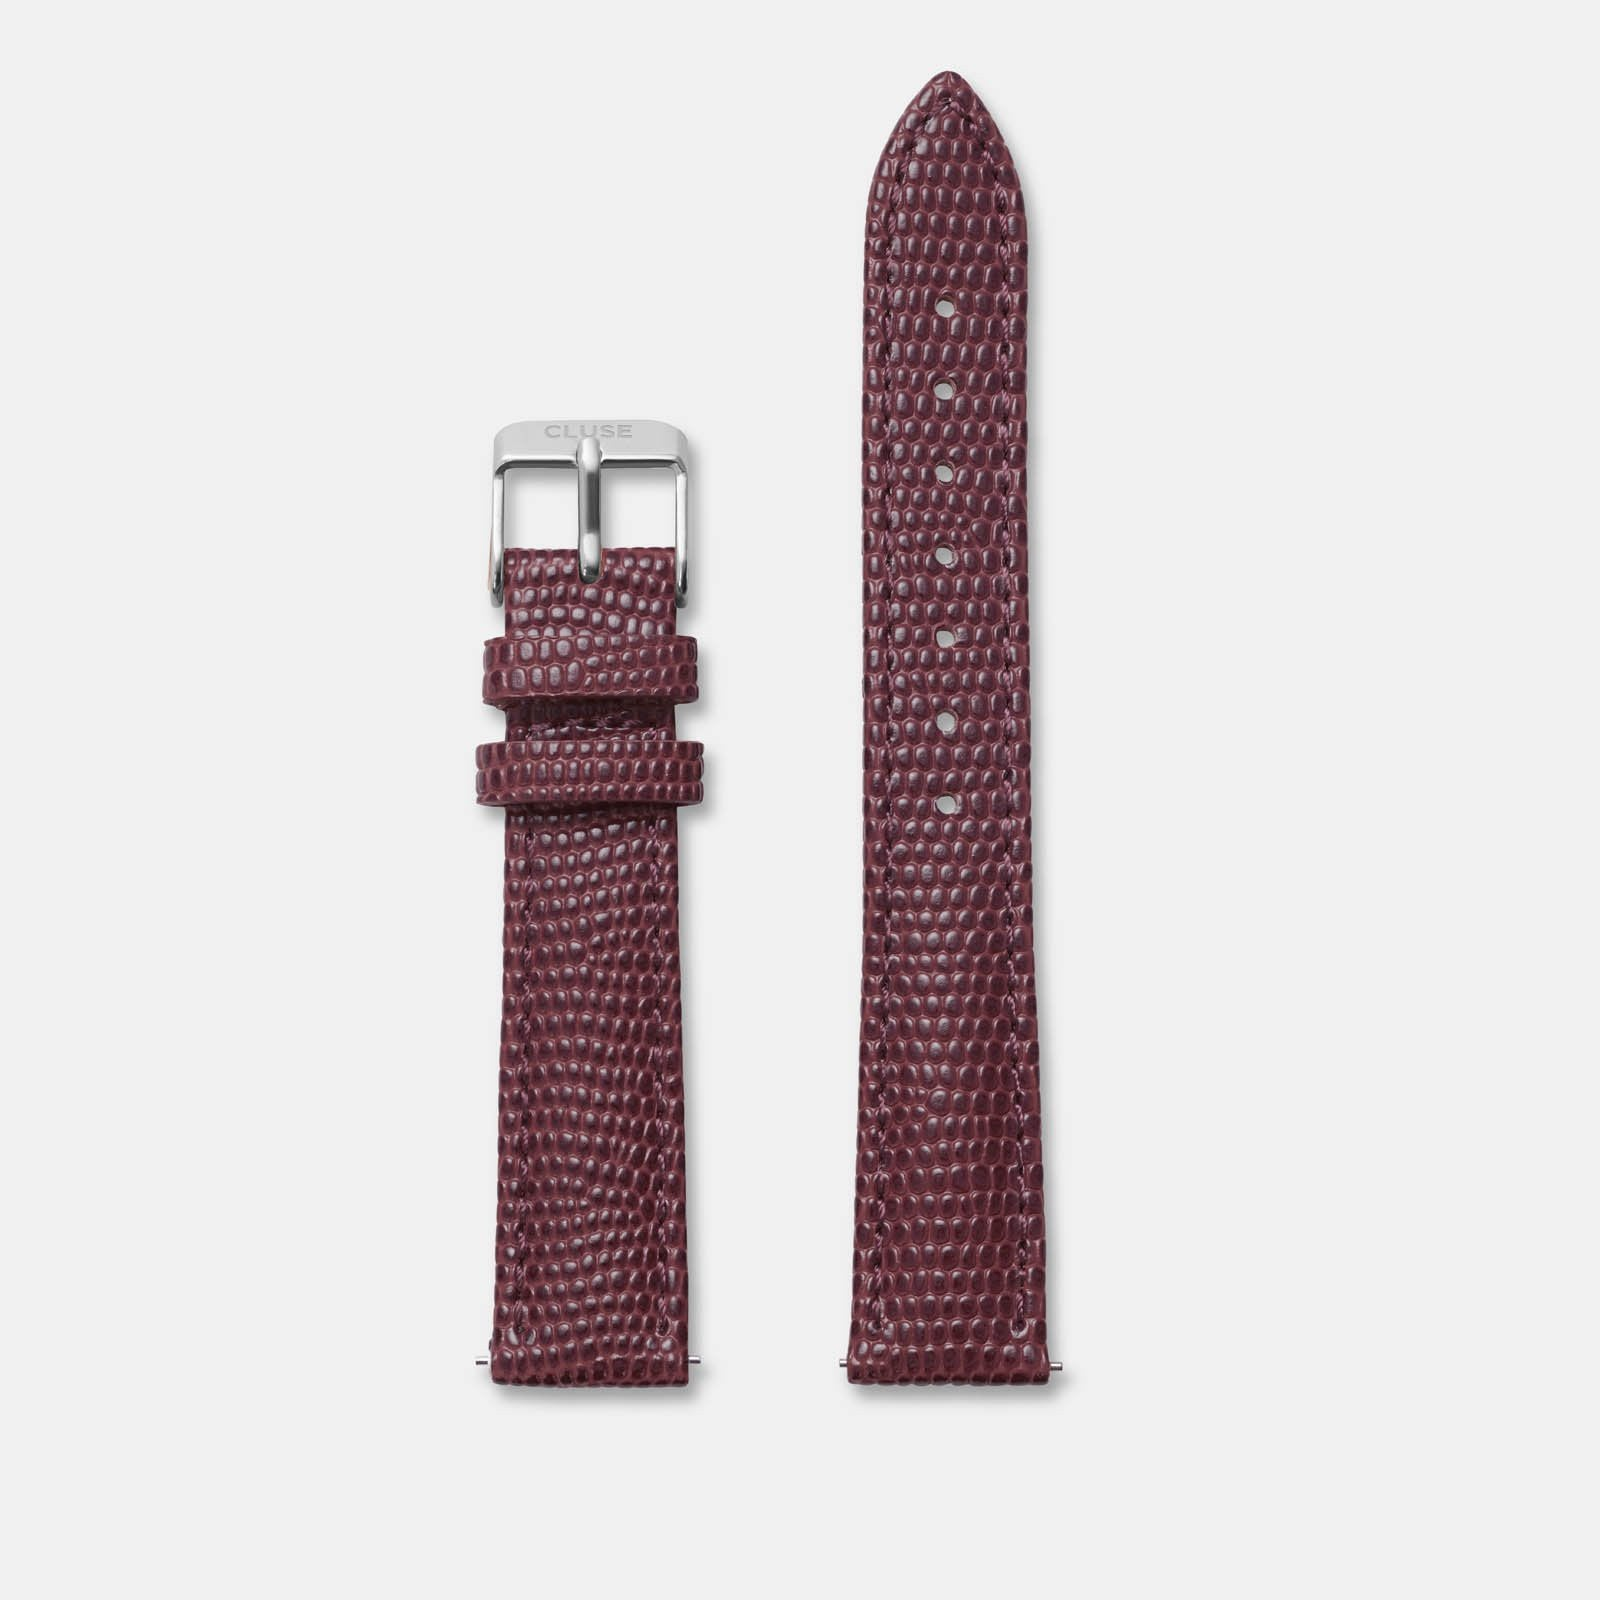 CLUSE 16 mm Strap Burgundy Lizard/Silver CLS378 - strap